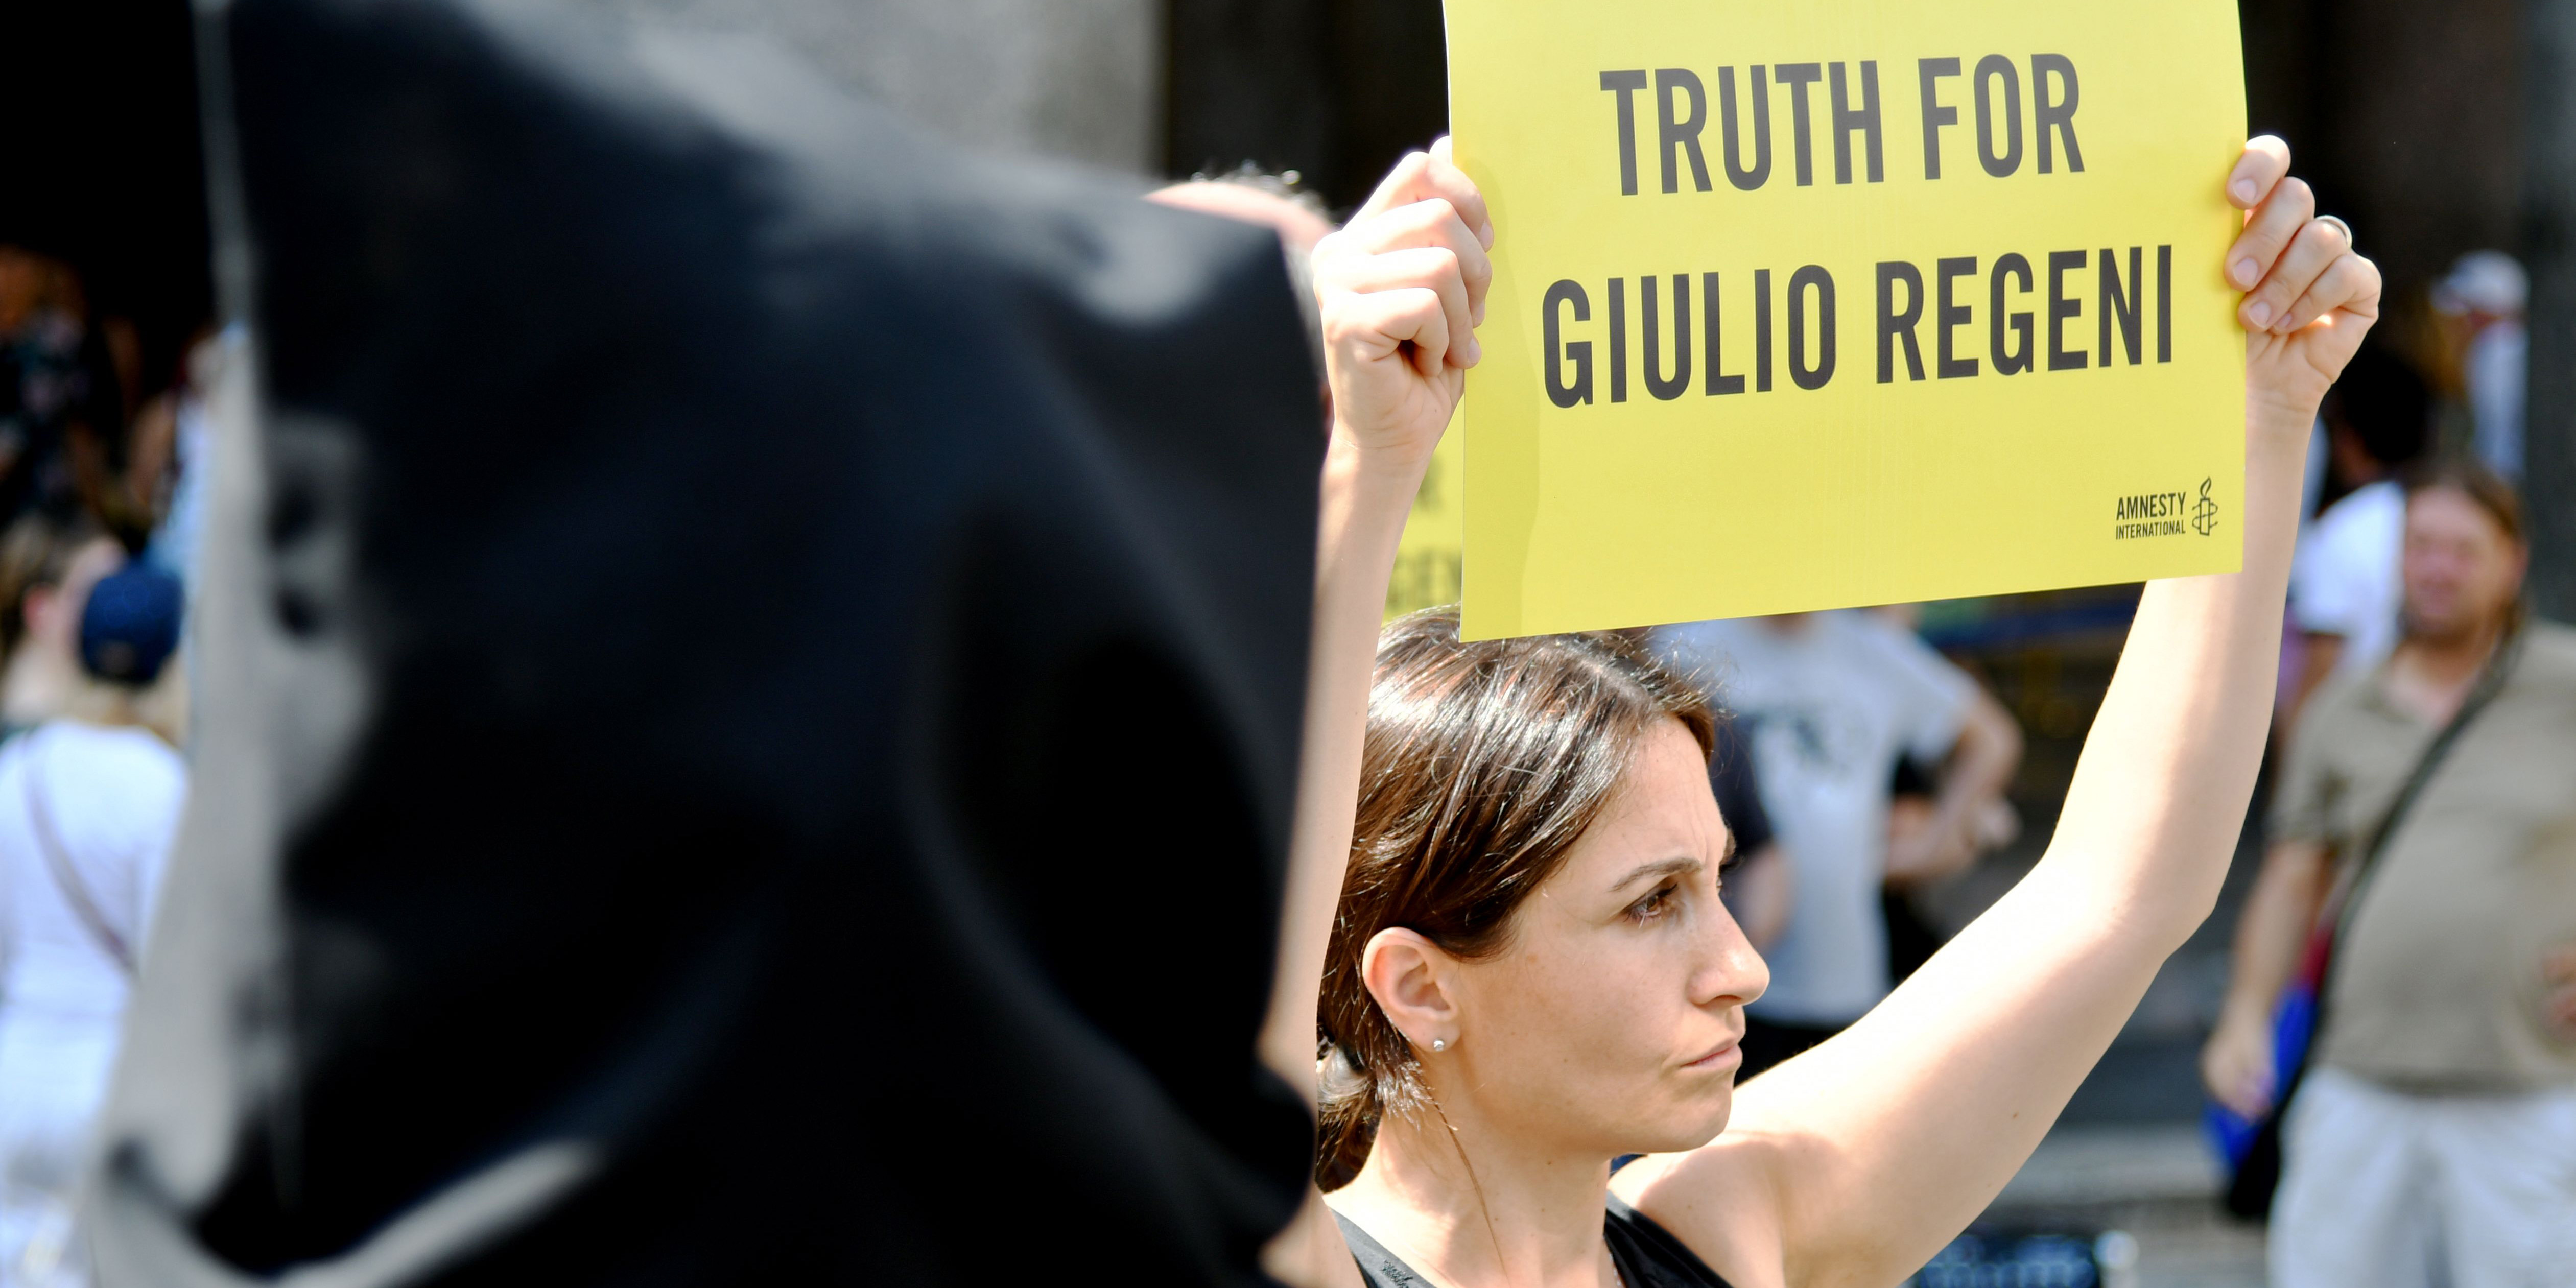 Amnesty International activists perform a flash mob on July 13, 2016, in Rome's Pantheon square to remember late Italian student Giulio Regeni and other victims following their last report. The badly mutilated body of Regeni, a 28-year-old Cambridge University PhD student, was found out on February 4, 2016 in Cairo. Italian media and diplomats say he was killed by the security services but Egypt denies the claims. / AFP / VINCENZO PINTO (Photo credit should read VINCENZO PINTO/AFP/Getty Images)